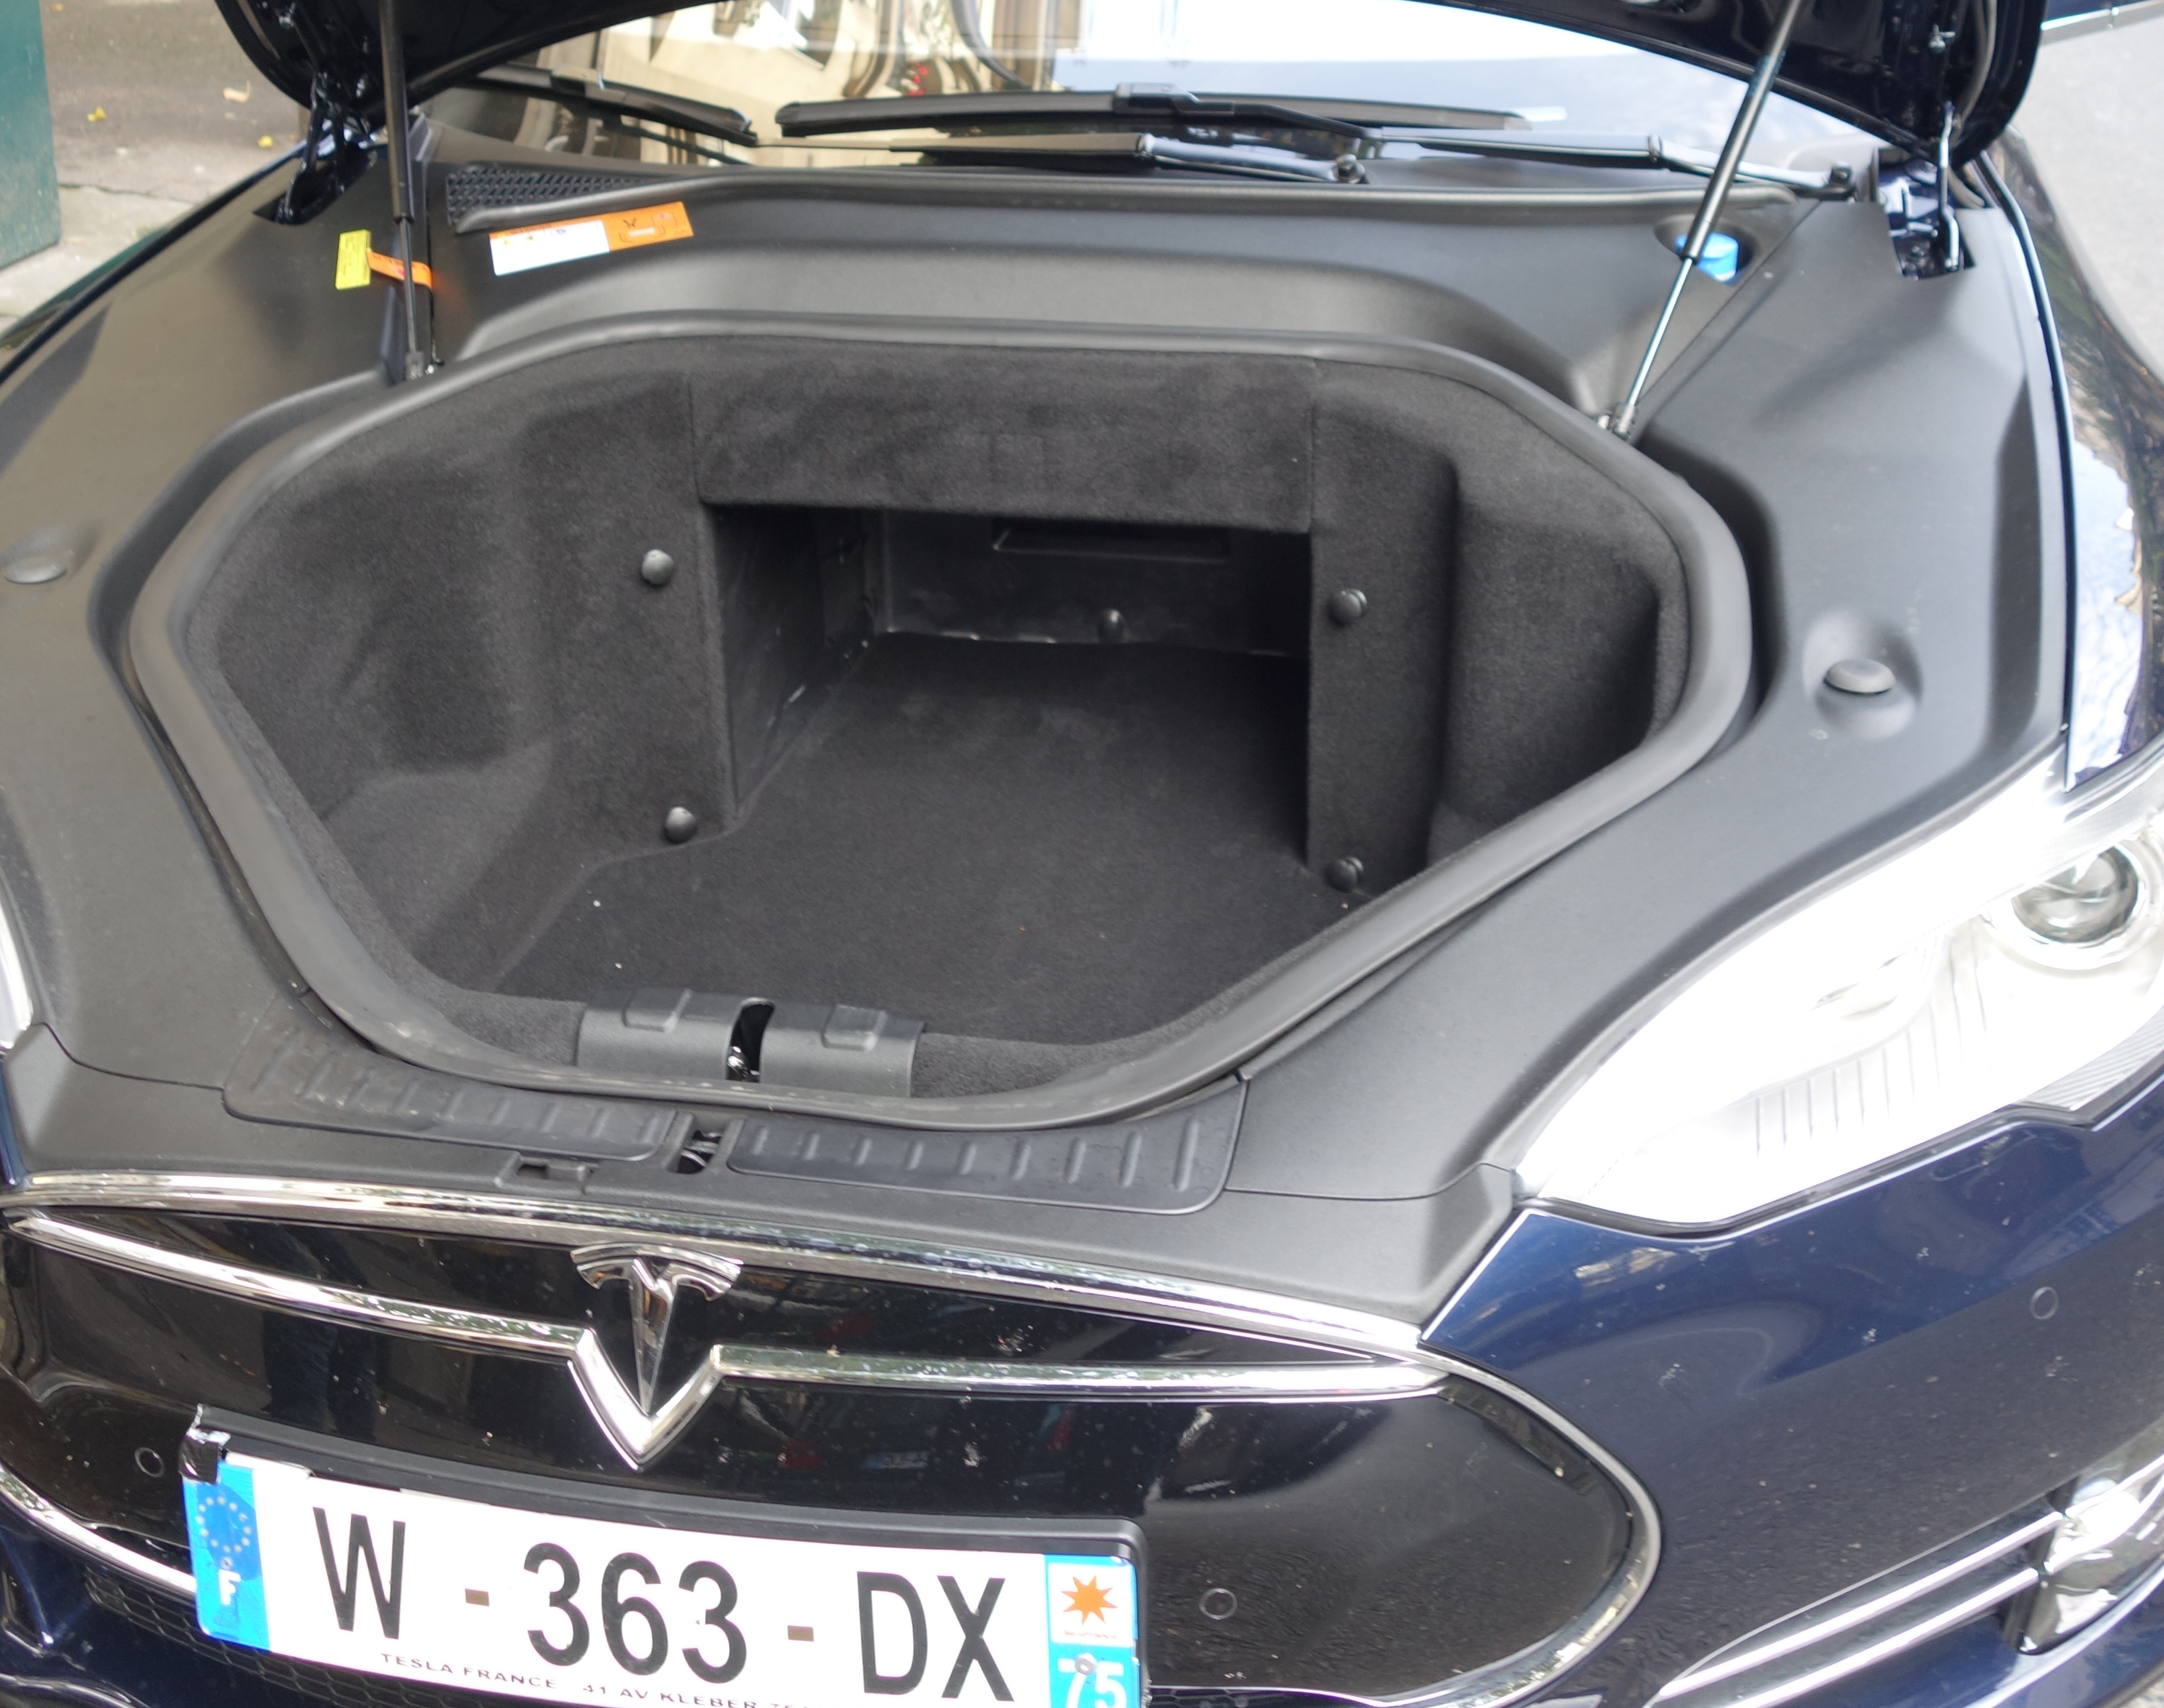 tesla s test drive portail des progr s disruptifs. Black Bedroom Furniture Sets. Home Design Ideas